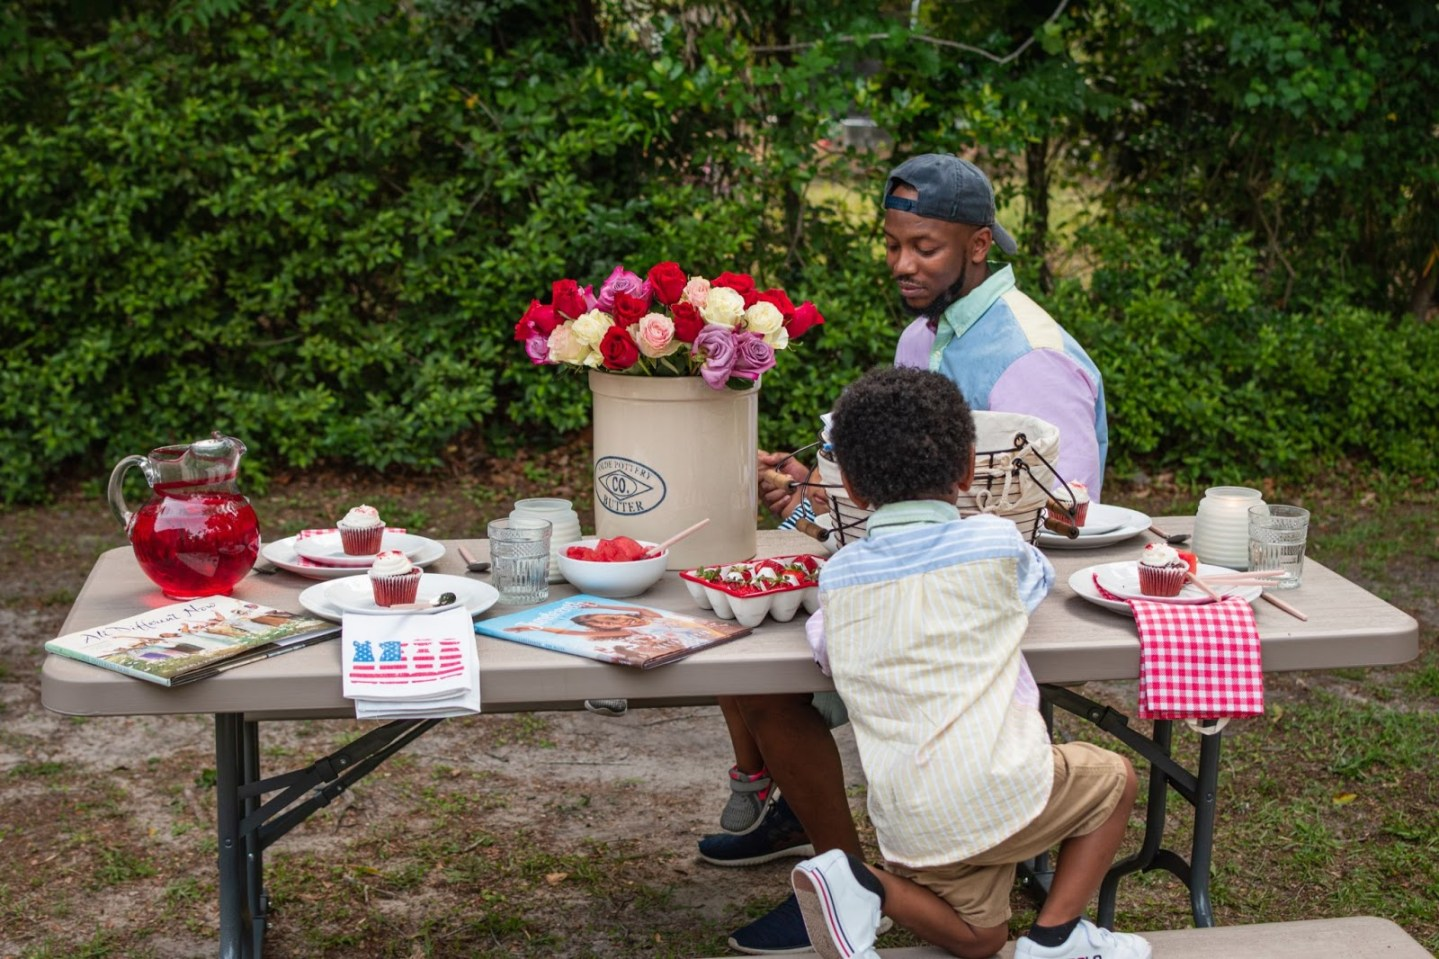 How to Host a Juneteenth Cookout with Little Kids